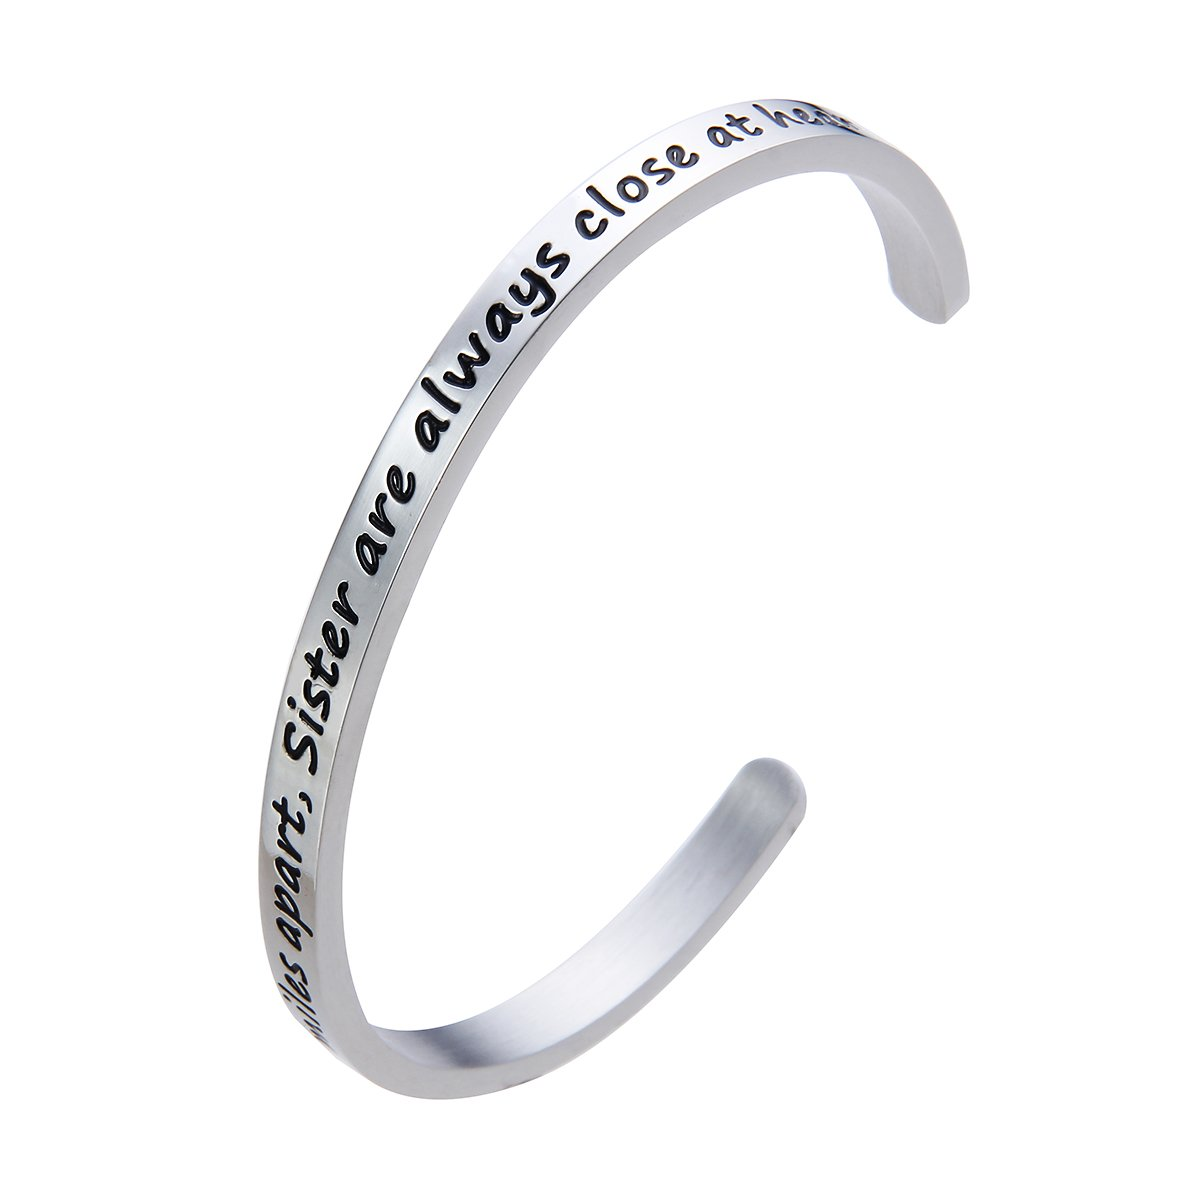 Meibai Maid of Honor Bracelet Stainless Steel Message Cuff Bangle Wedding Gift for Bridesmaid Sister (Side by Side or Miles Apart, Sister are Always Close at Heart)